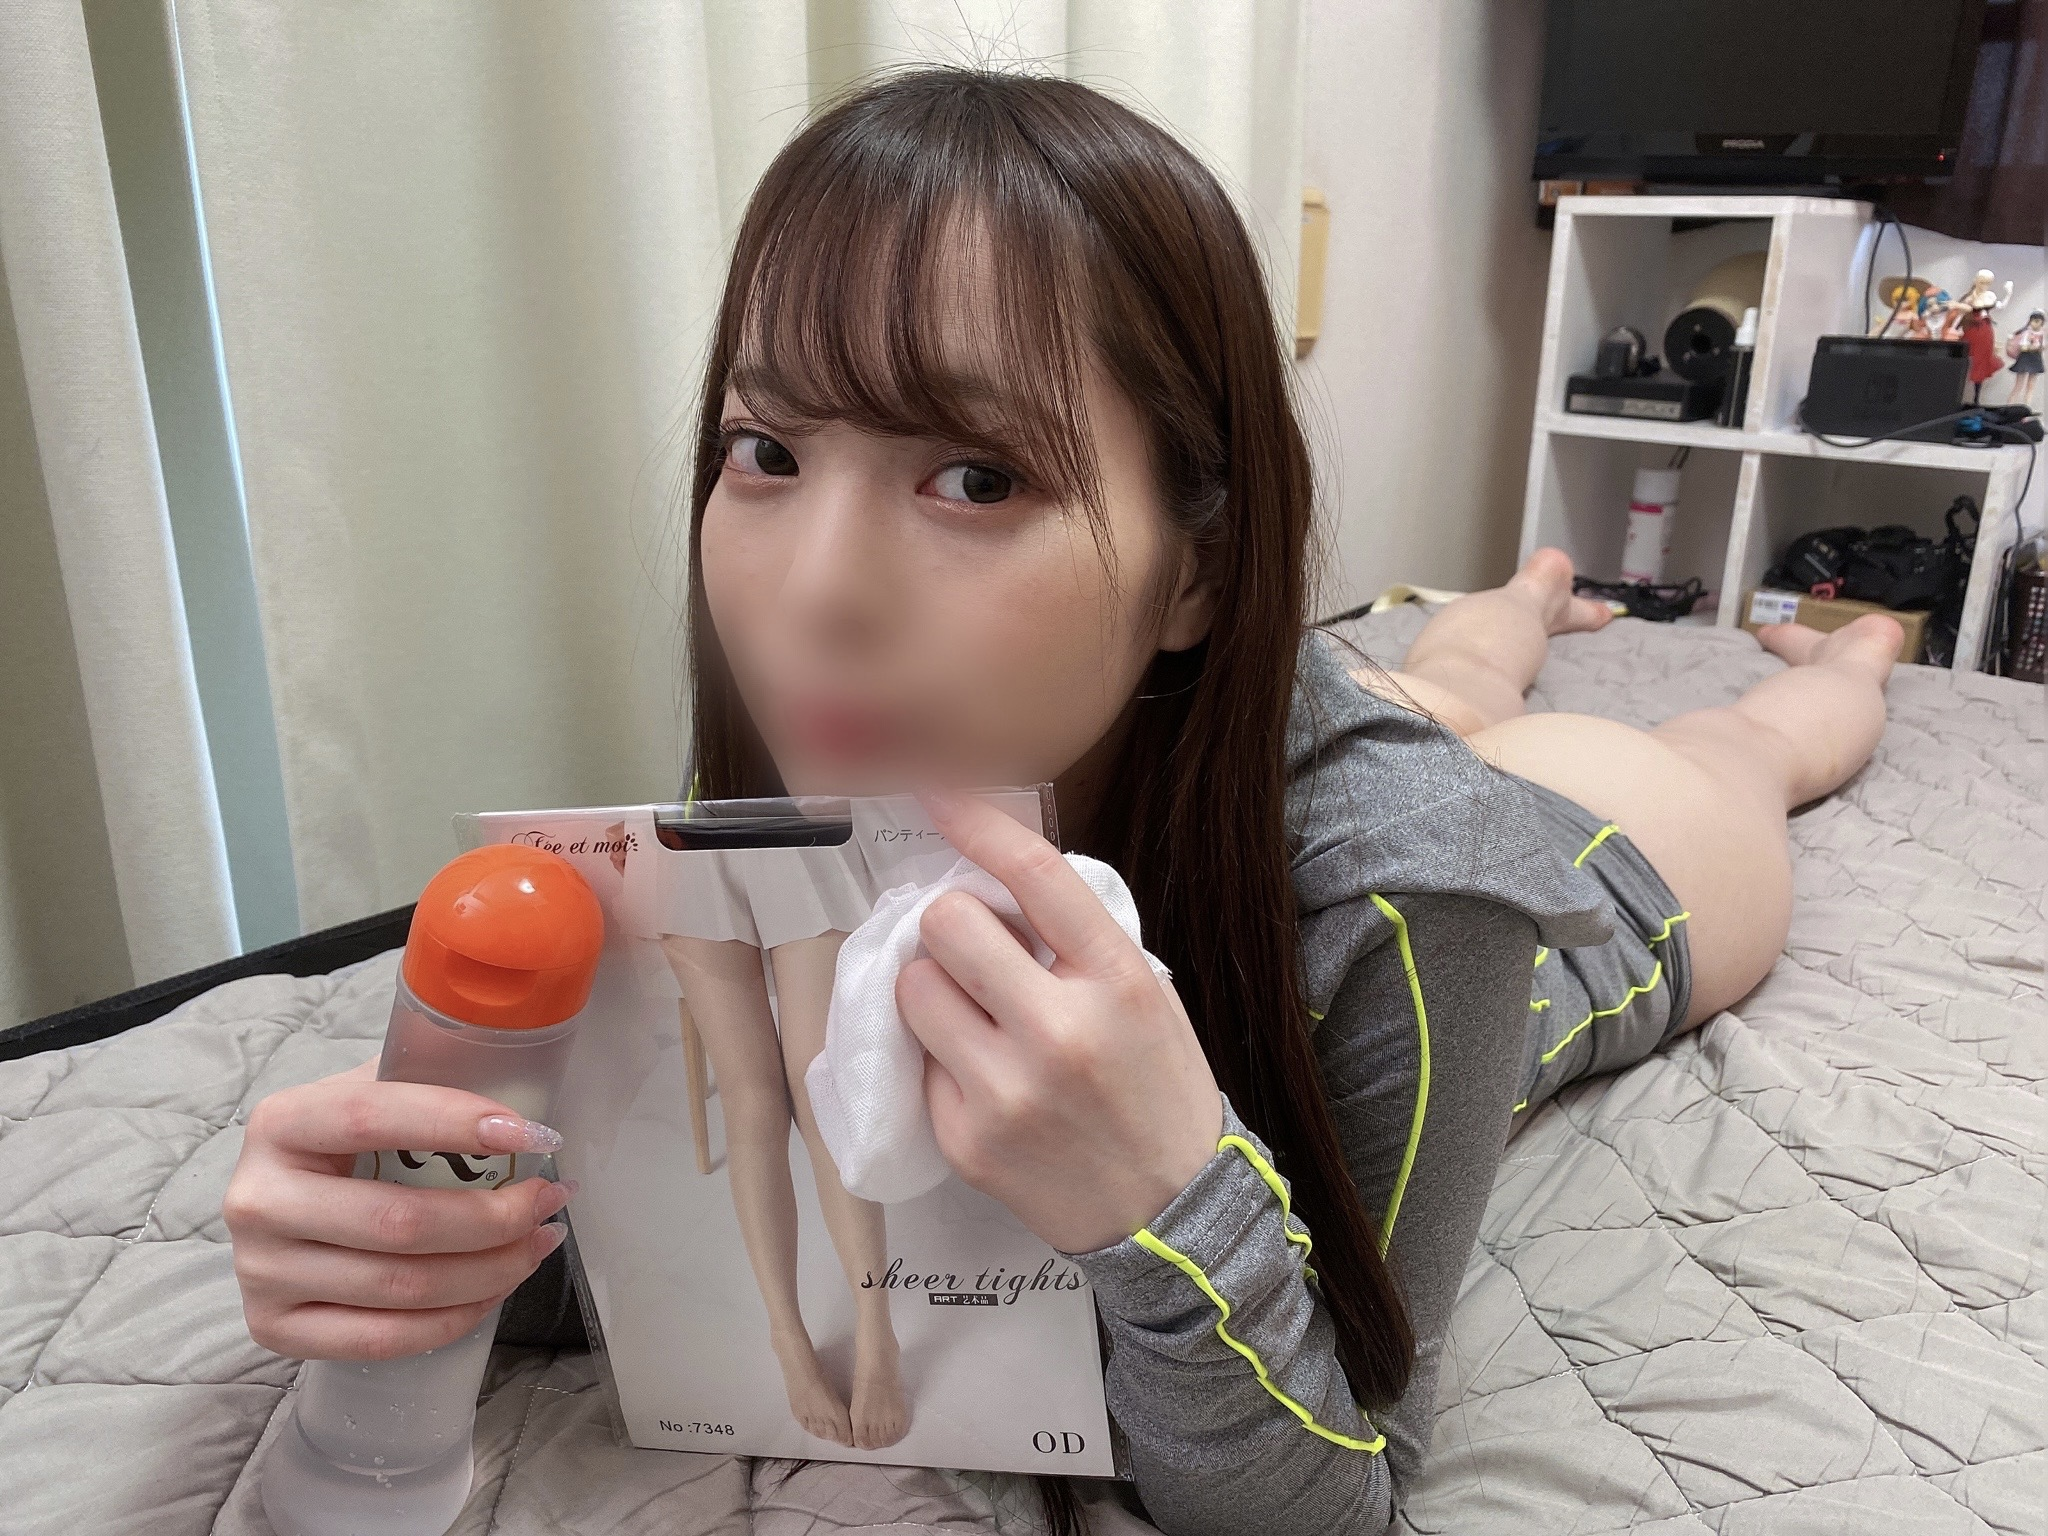 FC2 PPV 1830366 If you endure for 5 minutes, vaginal cum shot is OK. Hime-chan x lotion gauze x lotion